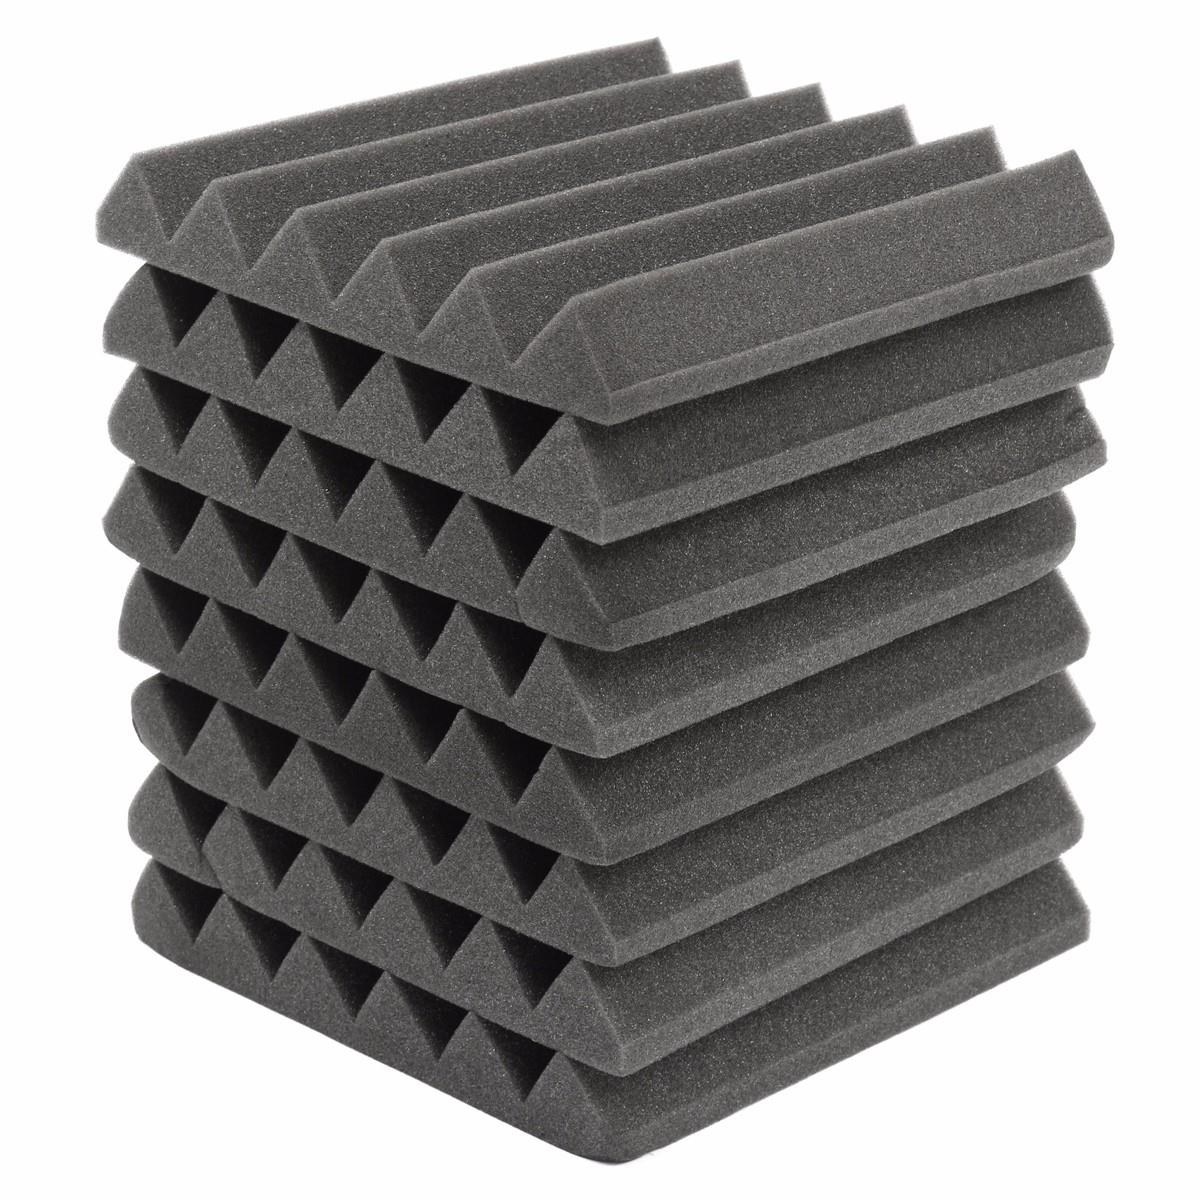 Wedge-Tiles Acoustic-Foam Sound-Treatment Studio-Room Absorption 8pcs 305x305-X-45mm